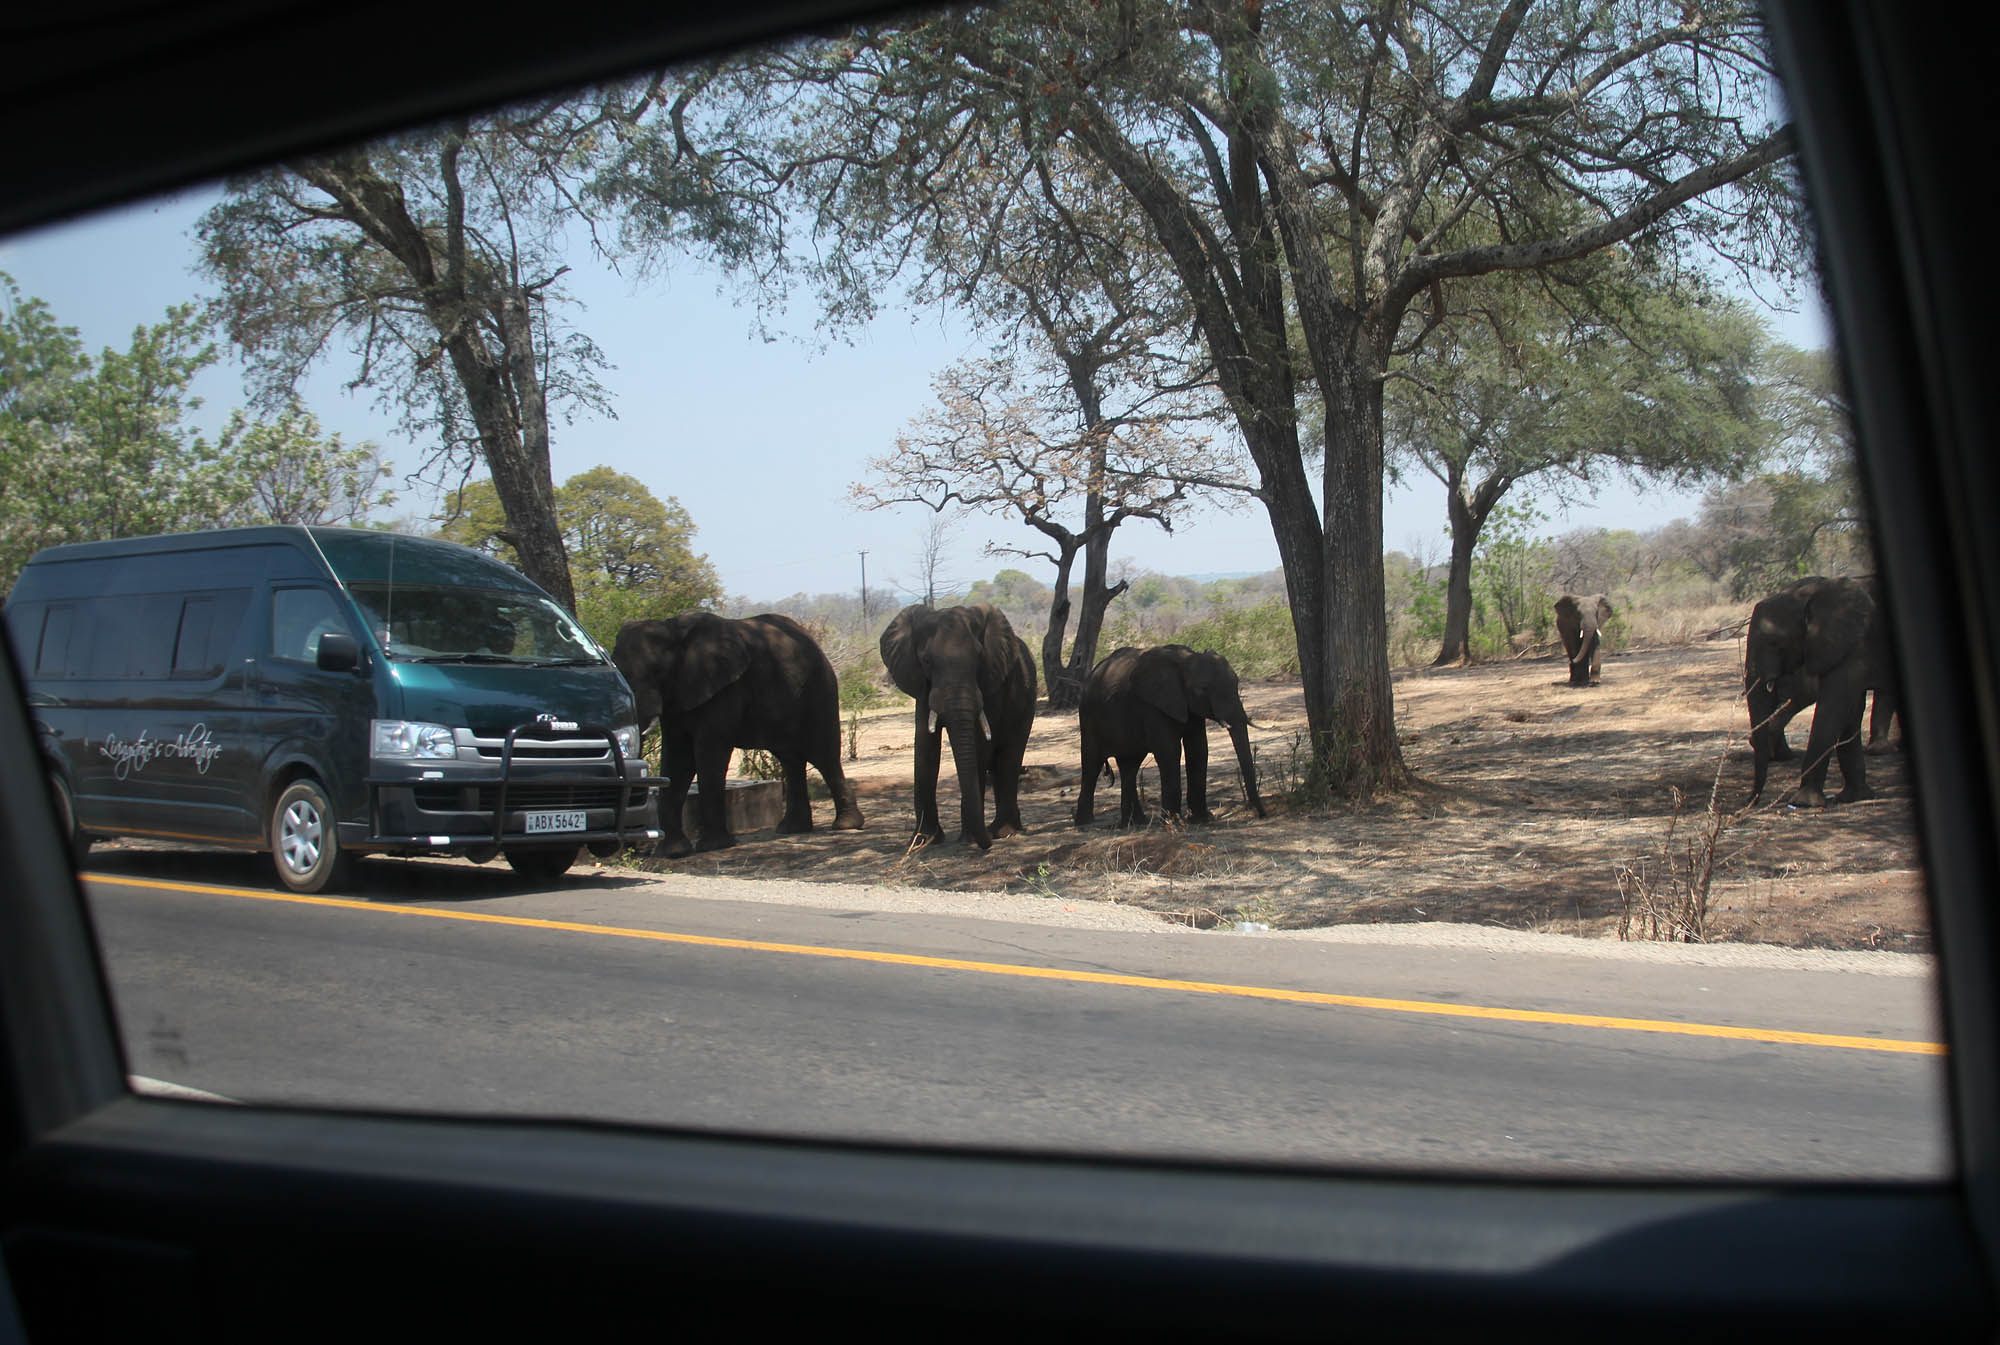 A small herd of Elephants heading for the road